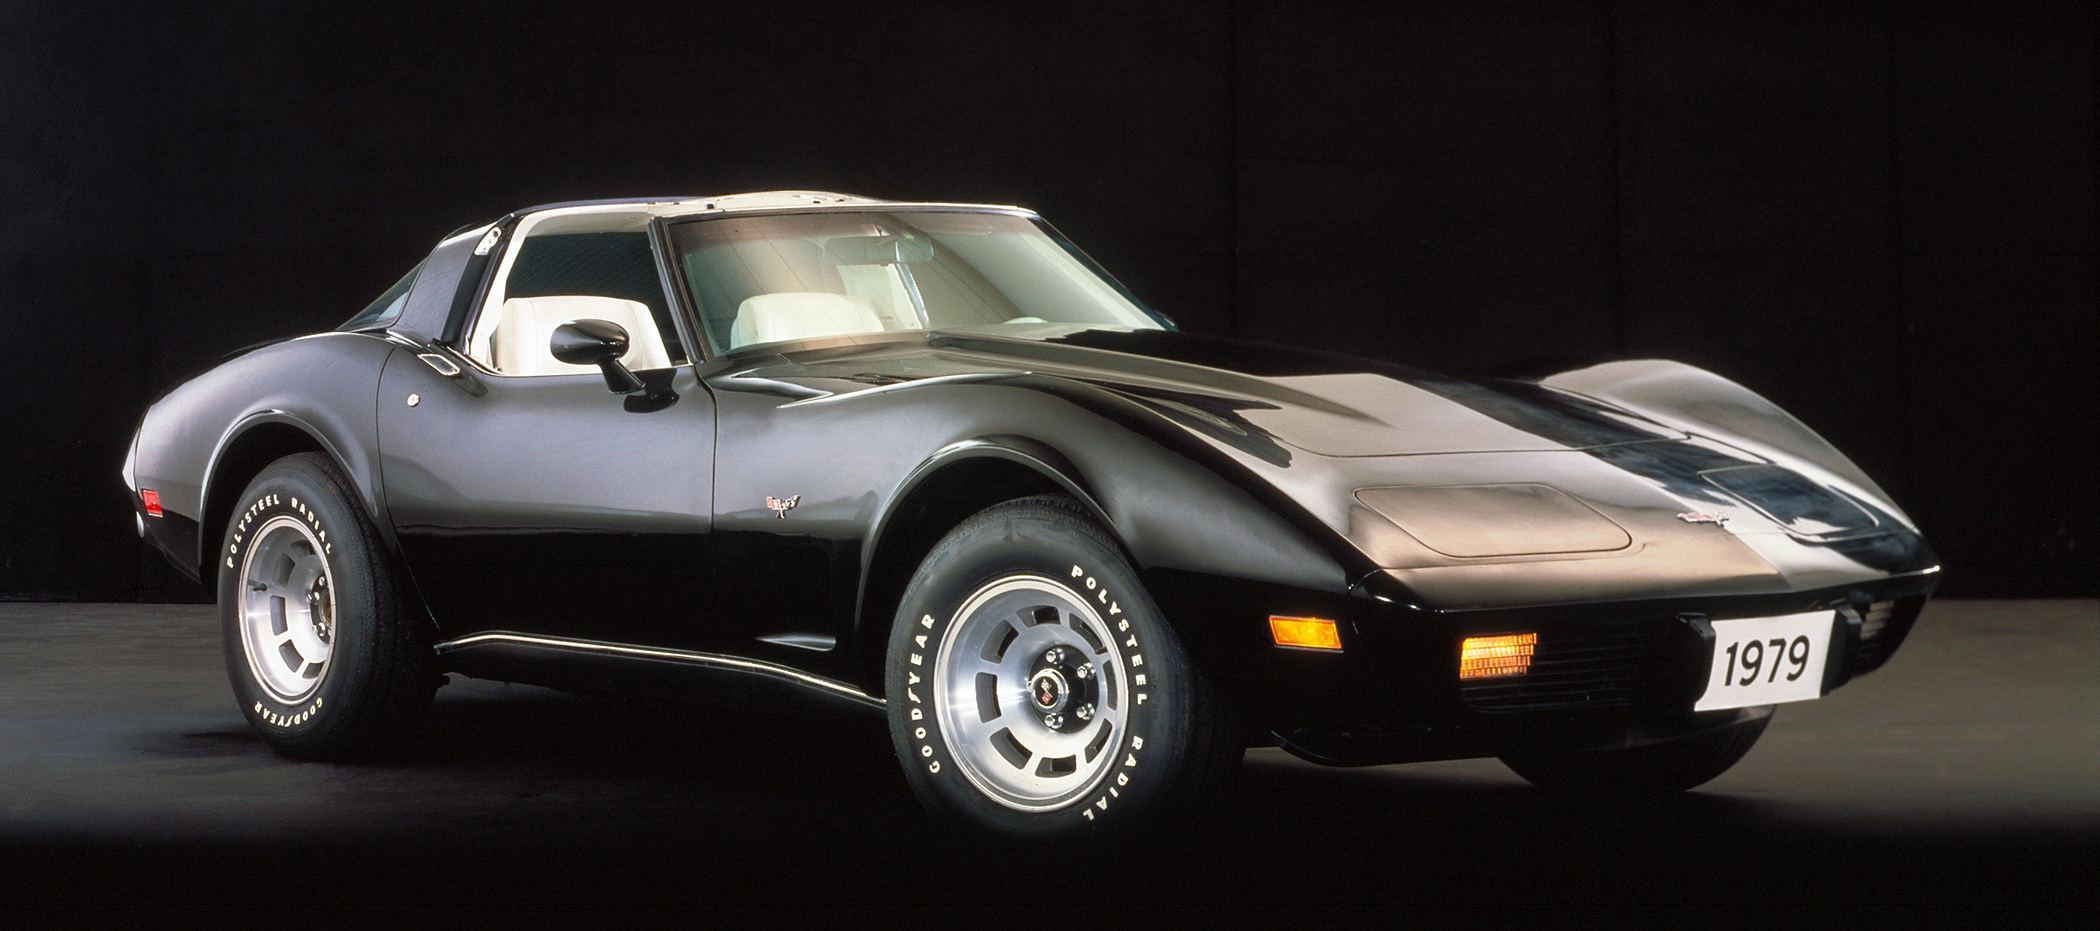 Best and worst Corvette models of all time